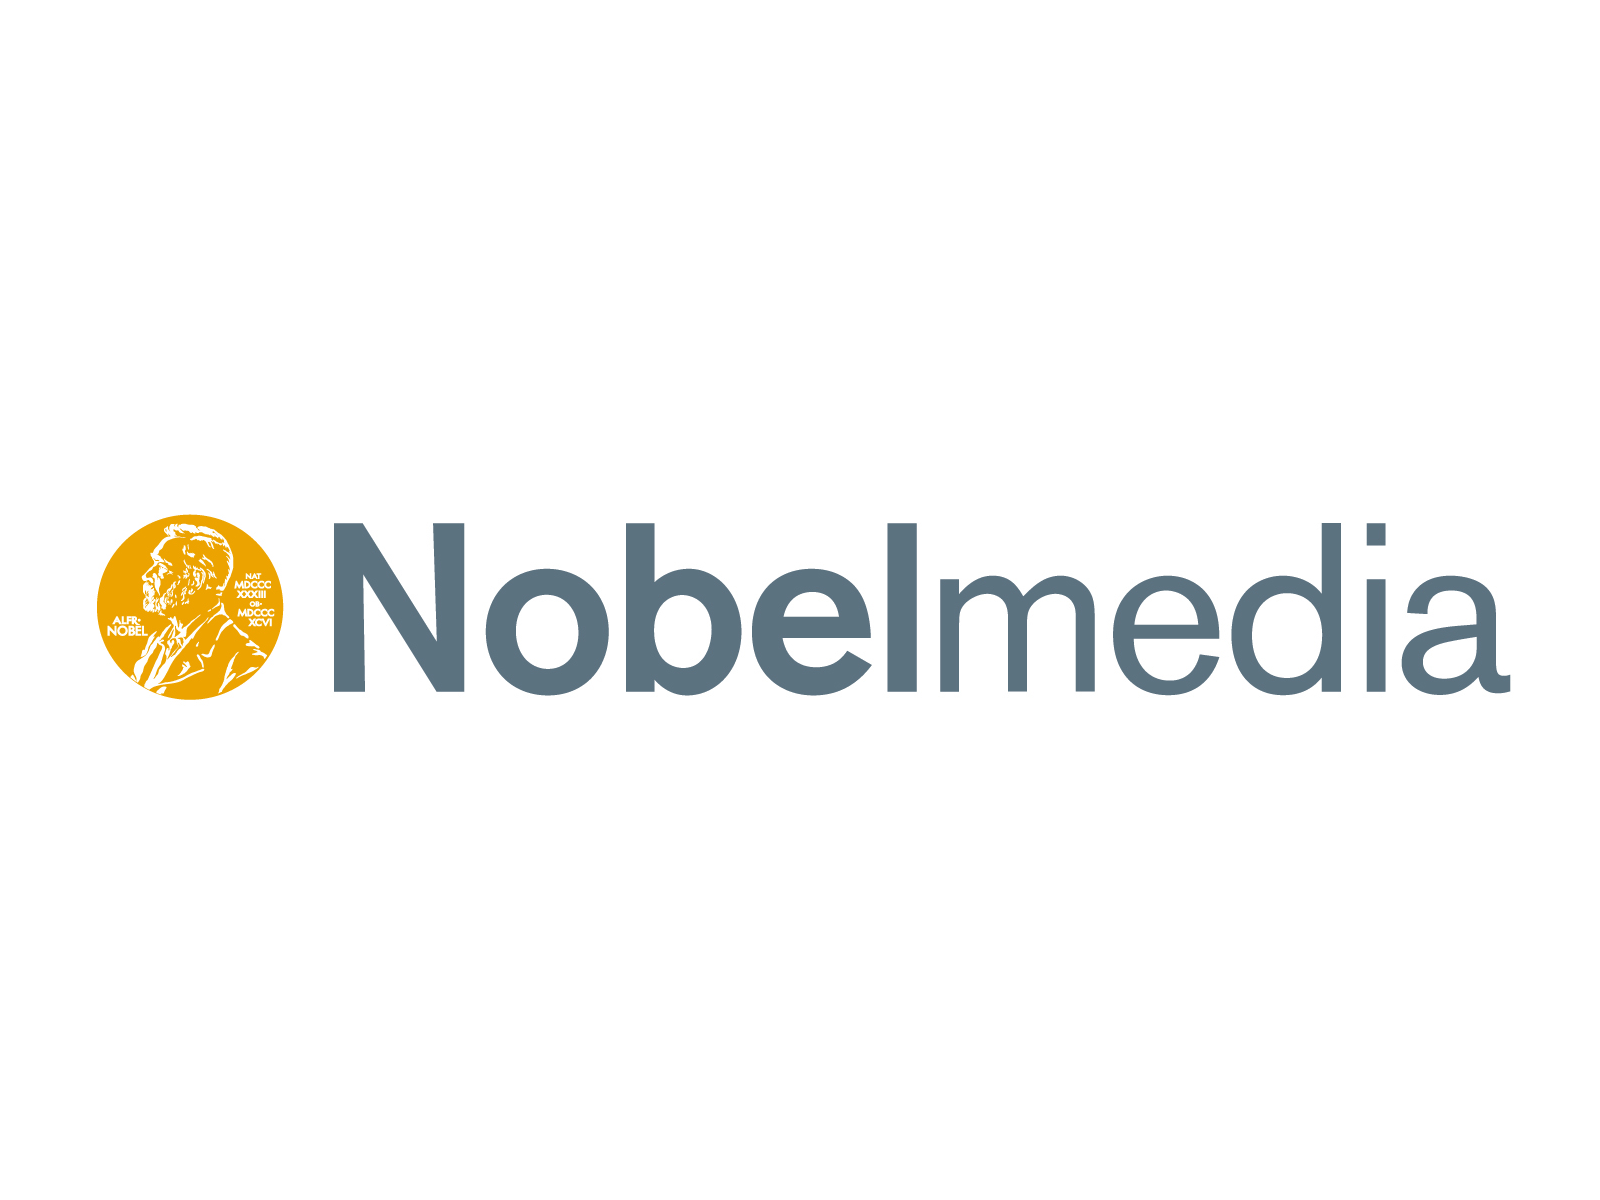 Learn About Htc Vive And Nobel Media Announce Vr Experience For Nobel Prize Http Ift Tt 2a7blqf On Www Service Fit Speci Htc Vive Vr Experience Nobel Prize